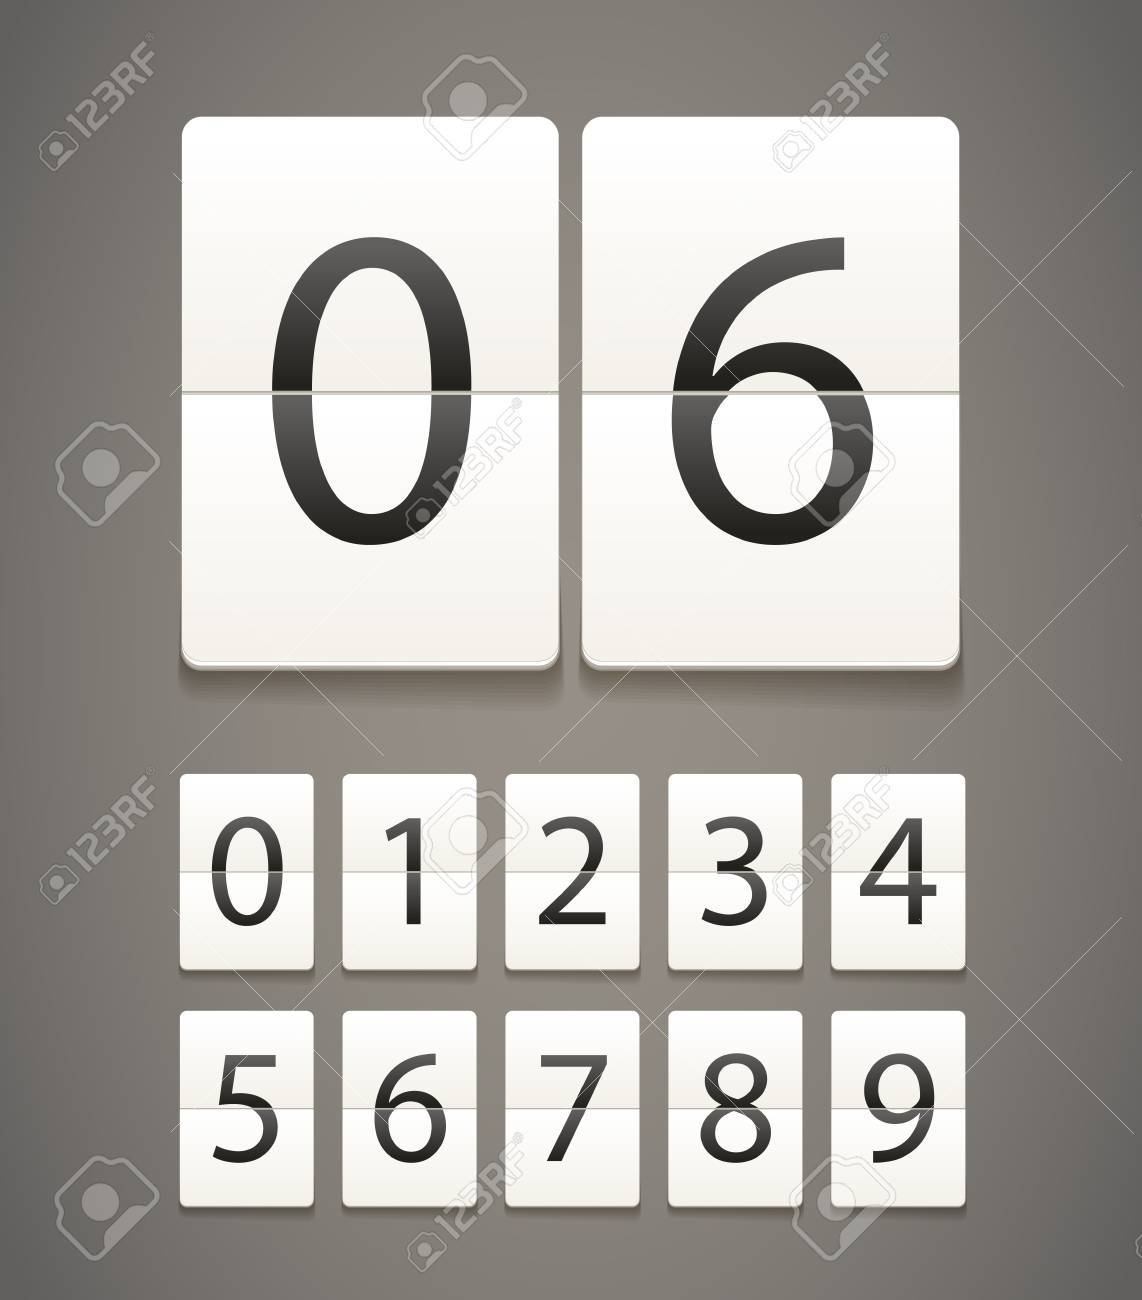 Paper diary with digits Stock Vector - 14392999